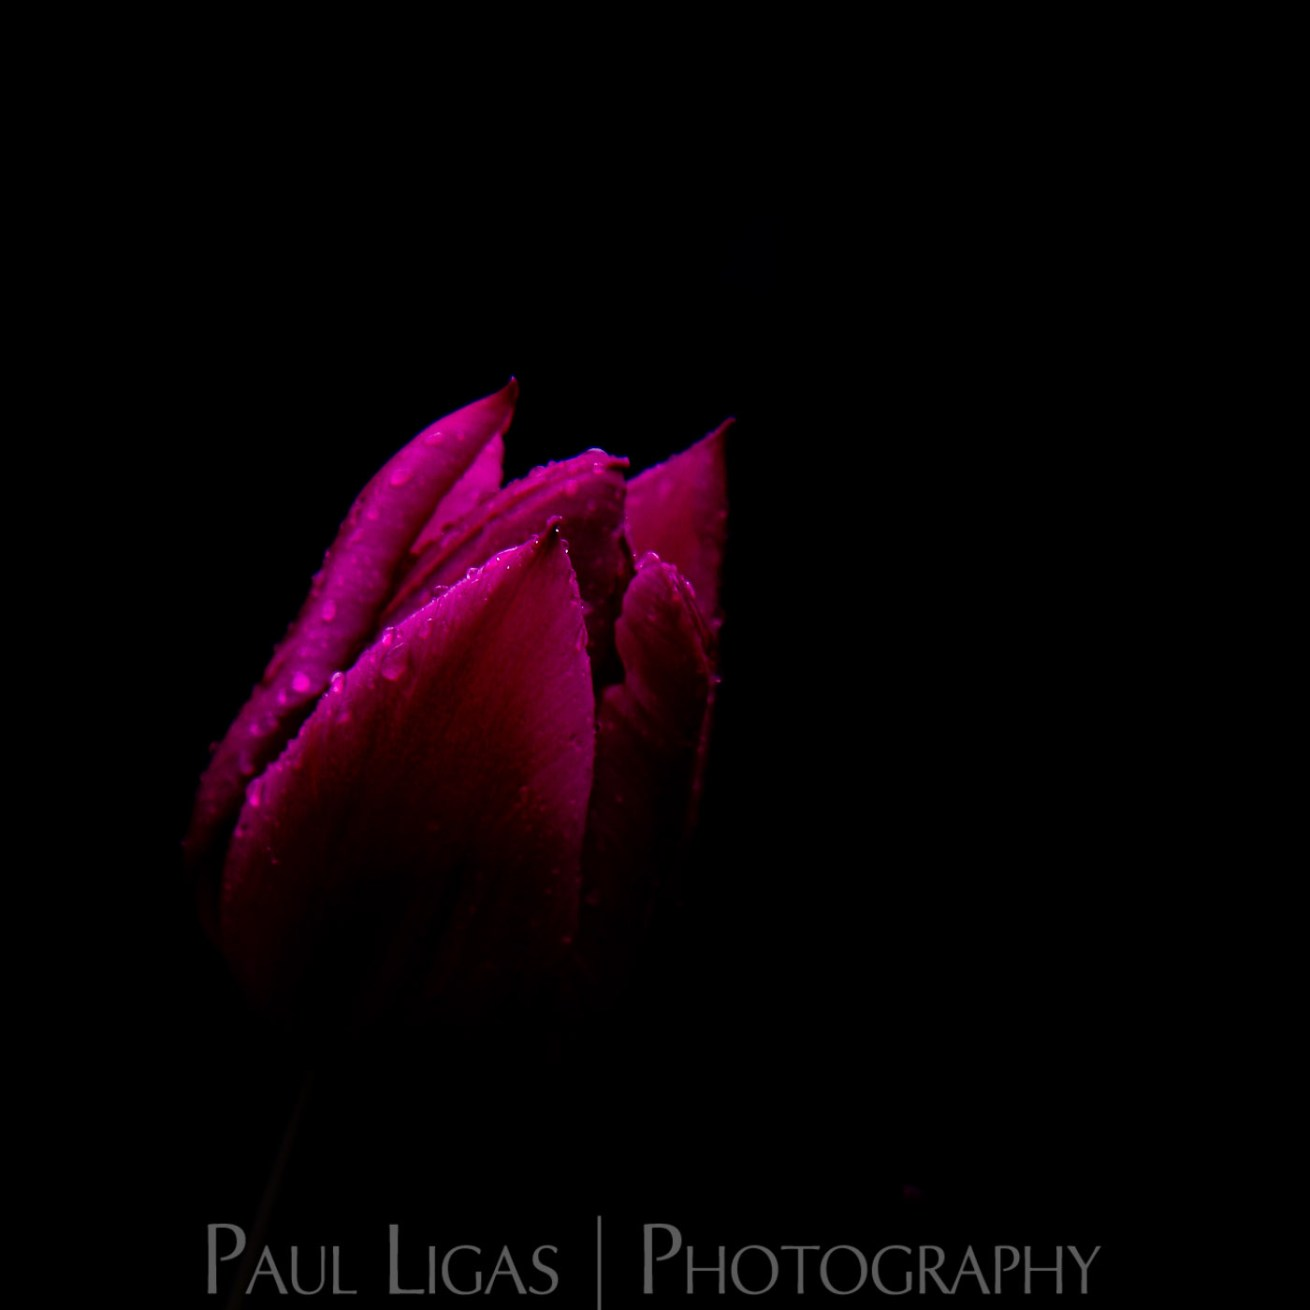 Mill House Farm product photographer photography hereford flowers 0450